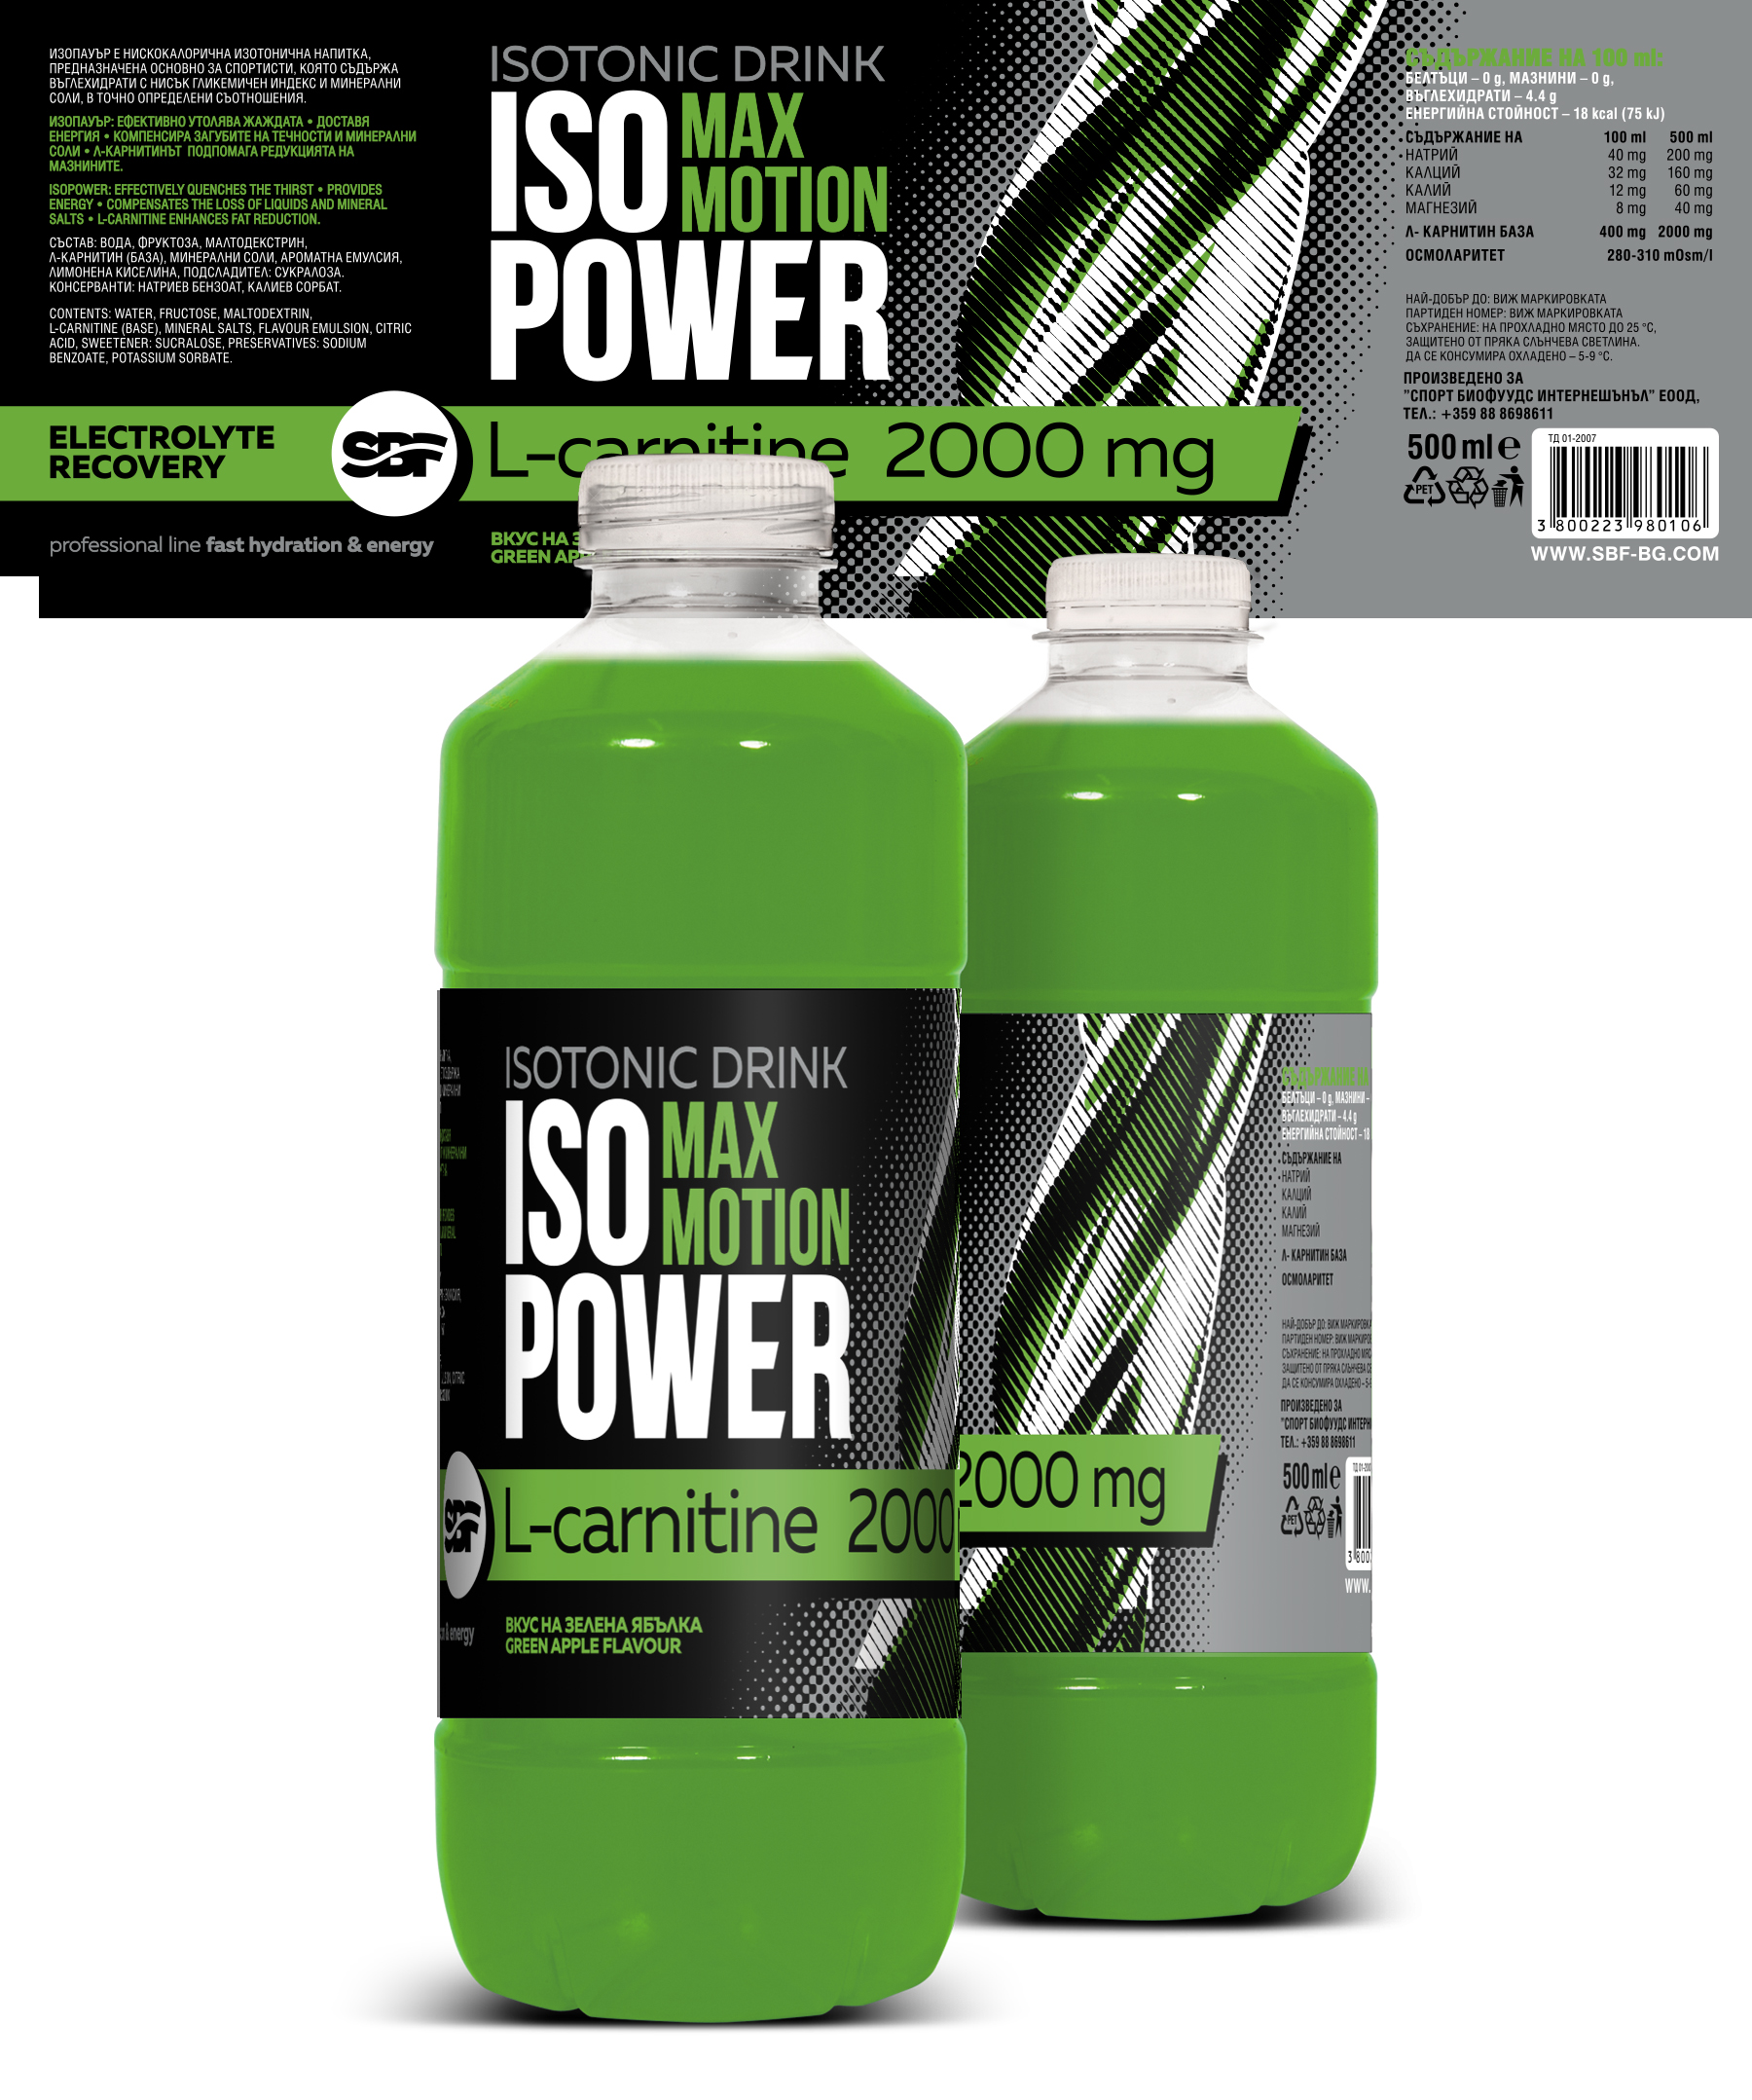 Isopower Maxmotion green apple flavour.